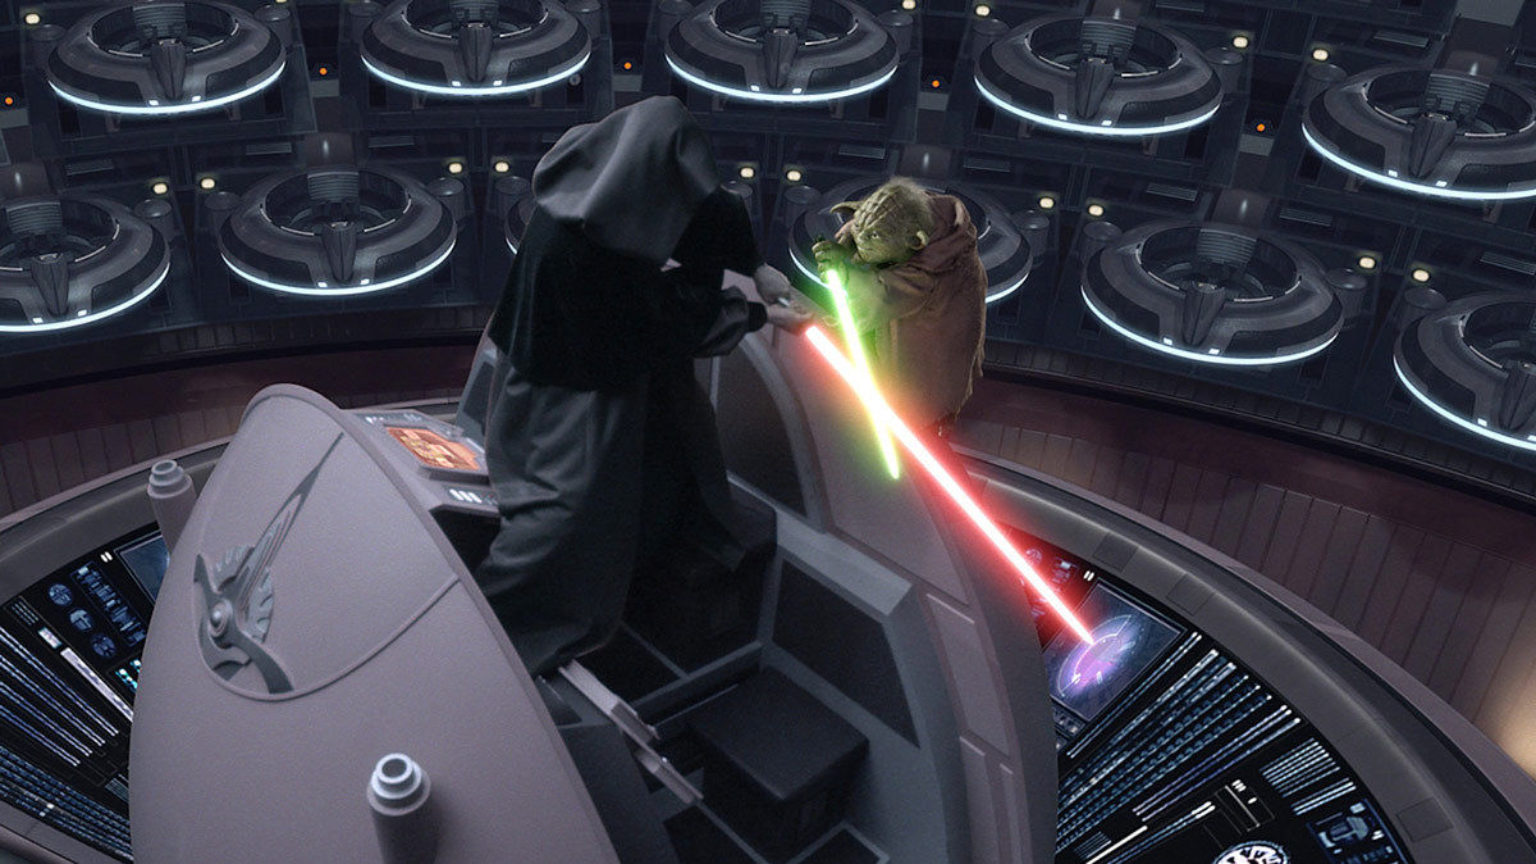 Image result for star wars 3 battle yoda vs palpatine